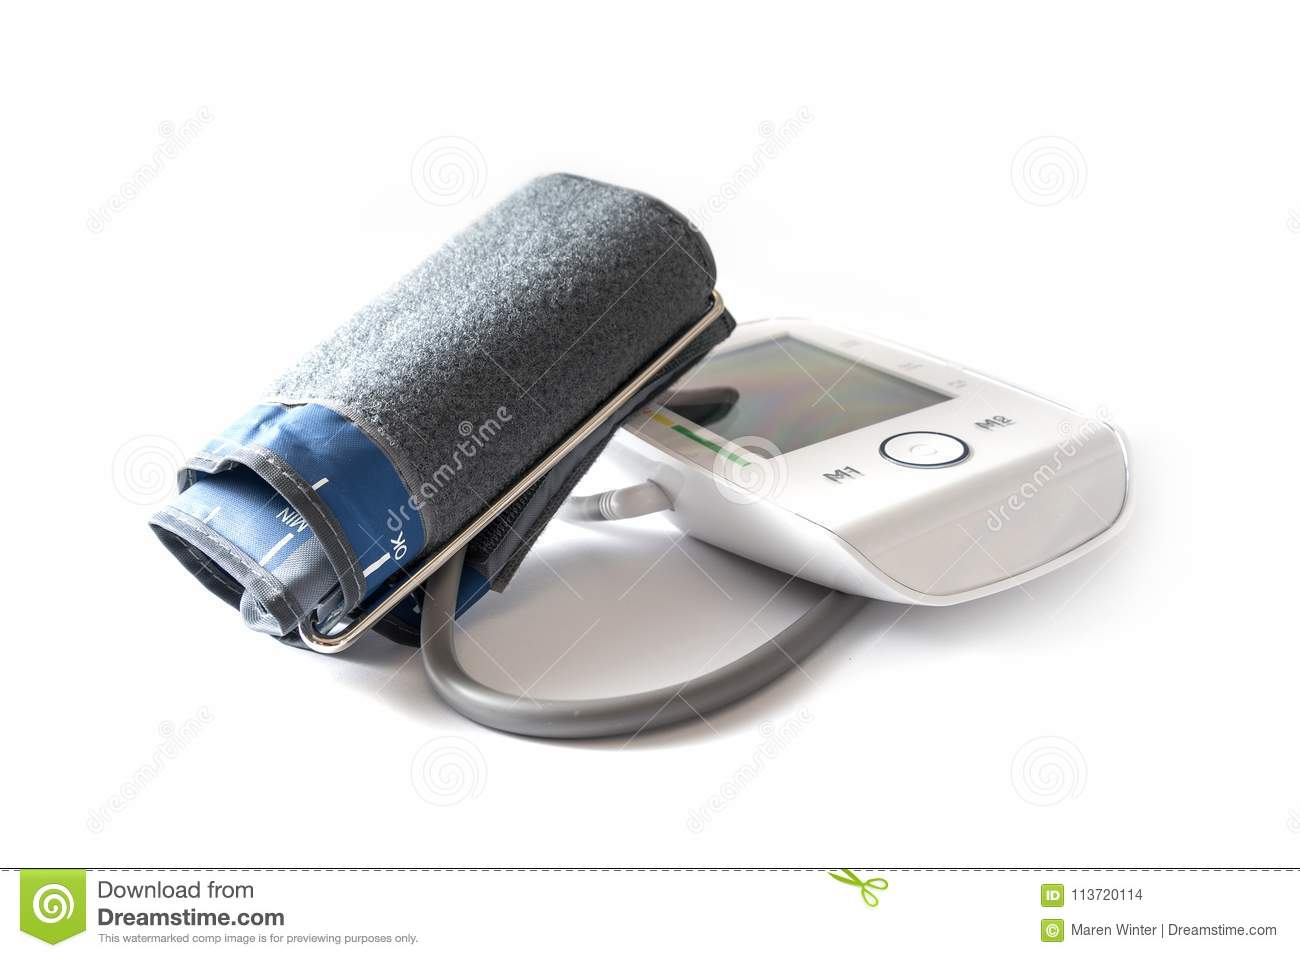 Blood Pressure Gauge With Cuff And Blank Digital Monitor